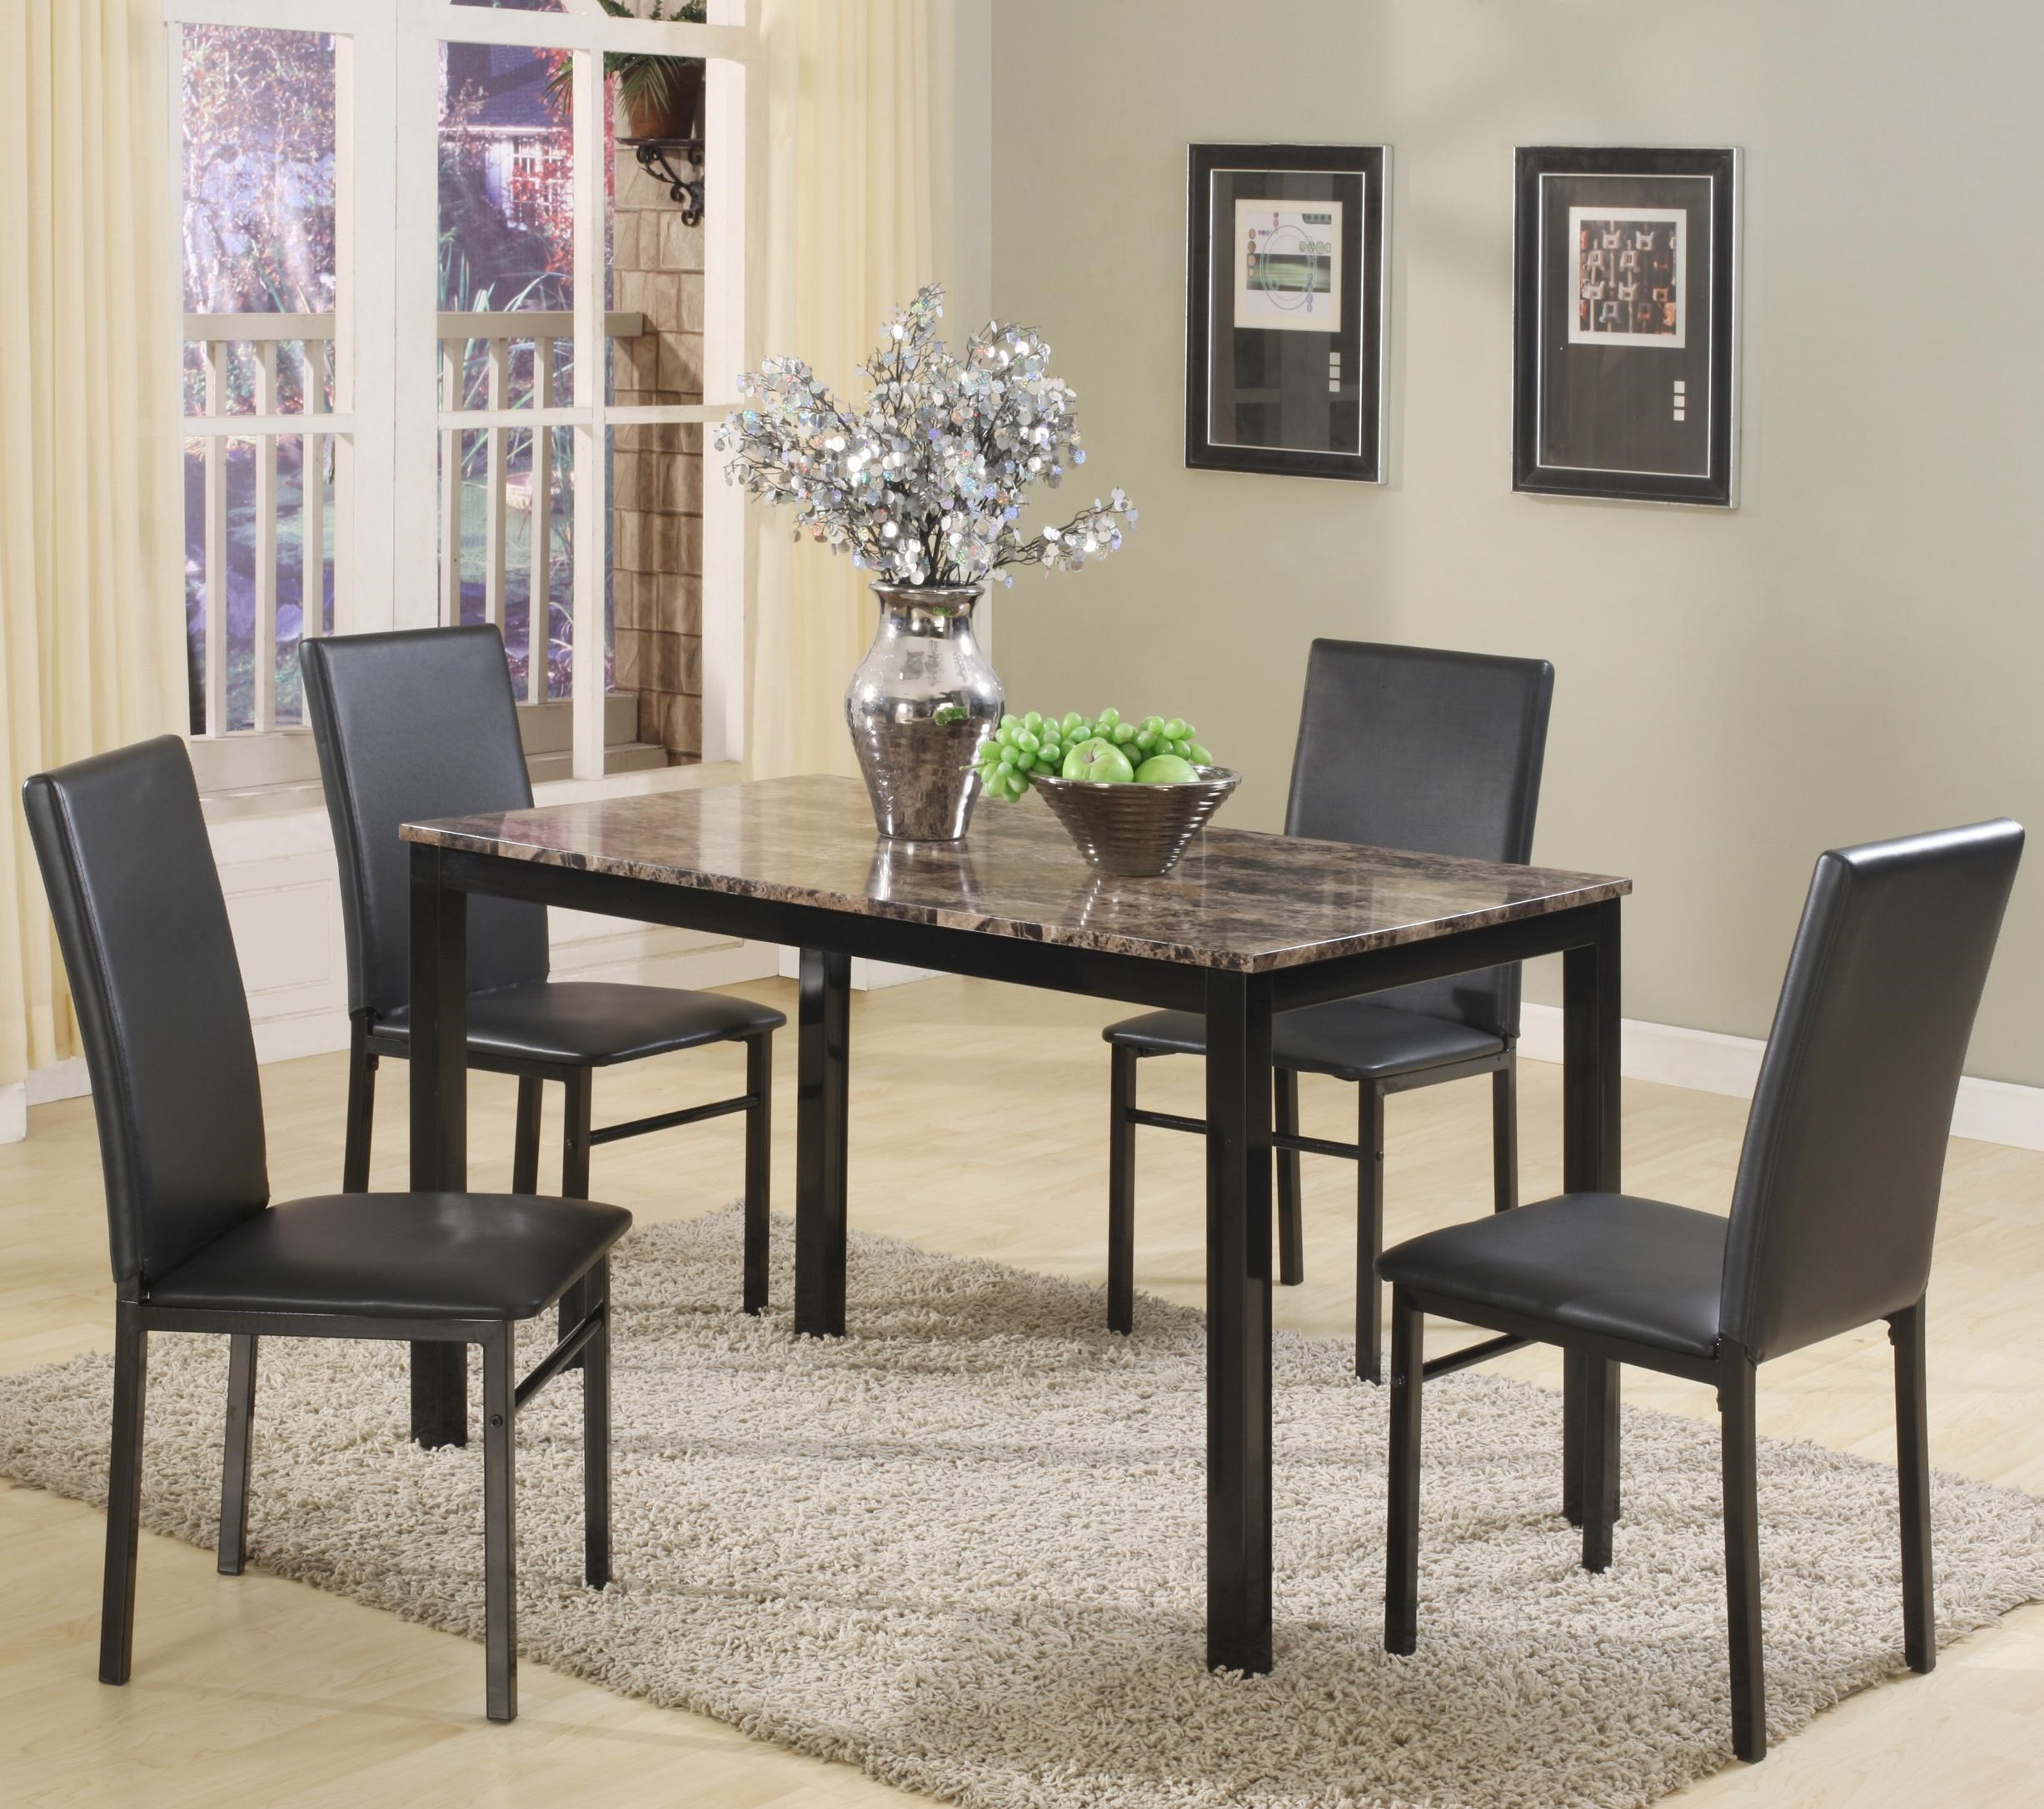 5 Piece Rectangular Table and Upholstered Parson Side Chairs Set